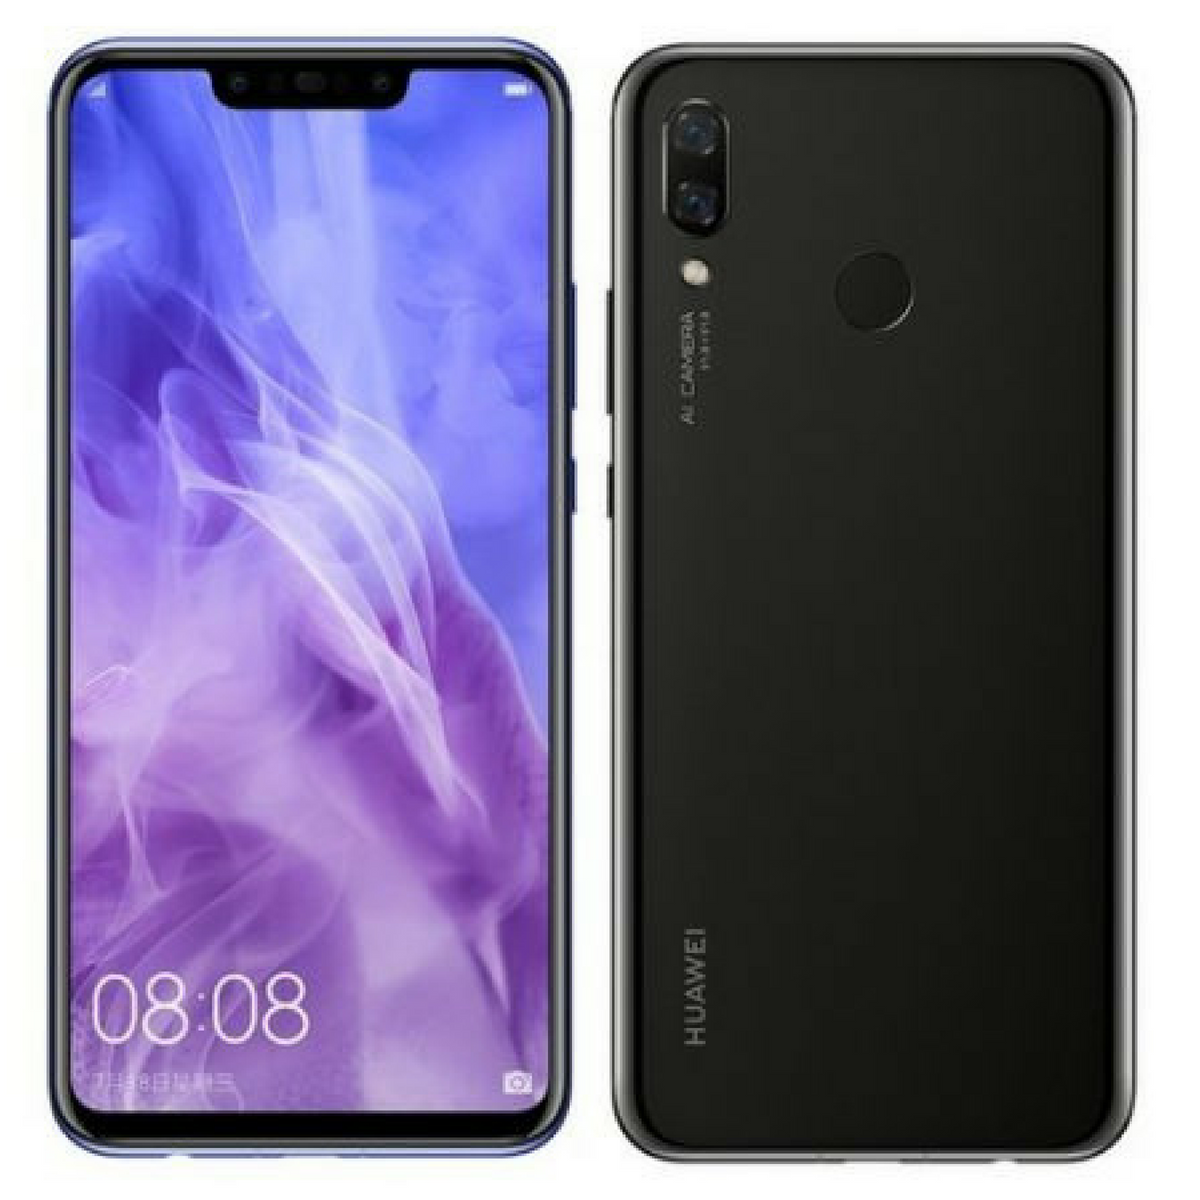 Huawei Nova 3i Spotted On Weibo Likely To Launch 18th July In Samsung Galaxy A6 2018 3gb 32gb Resmi Sein China